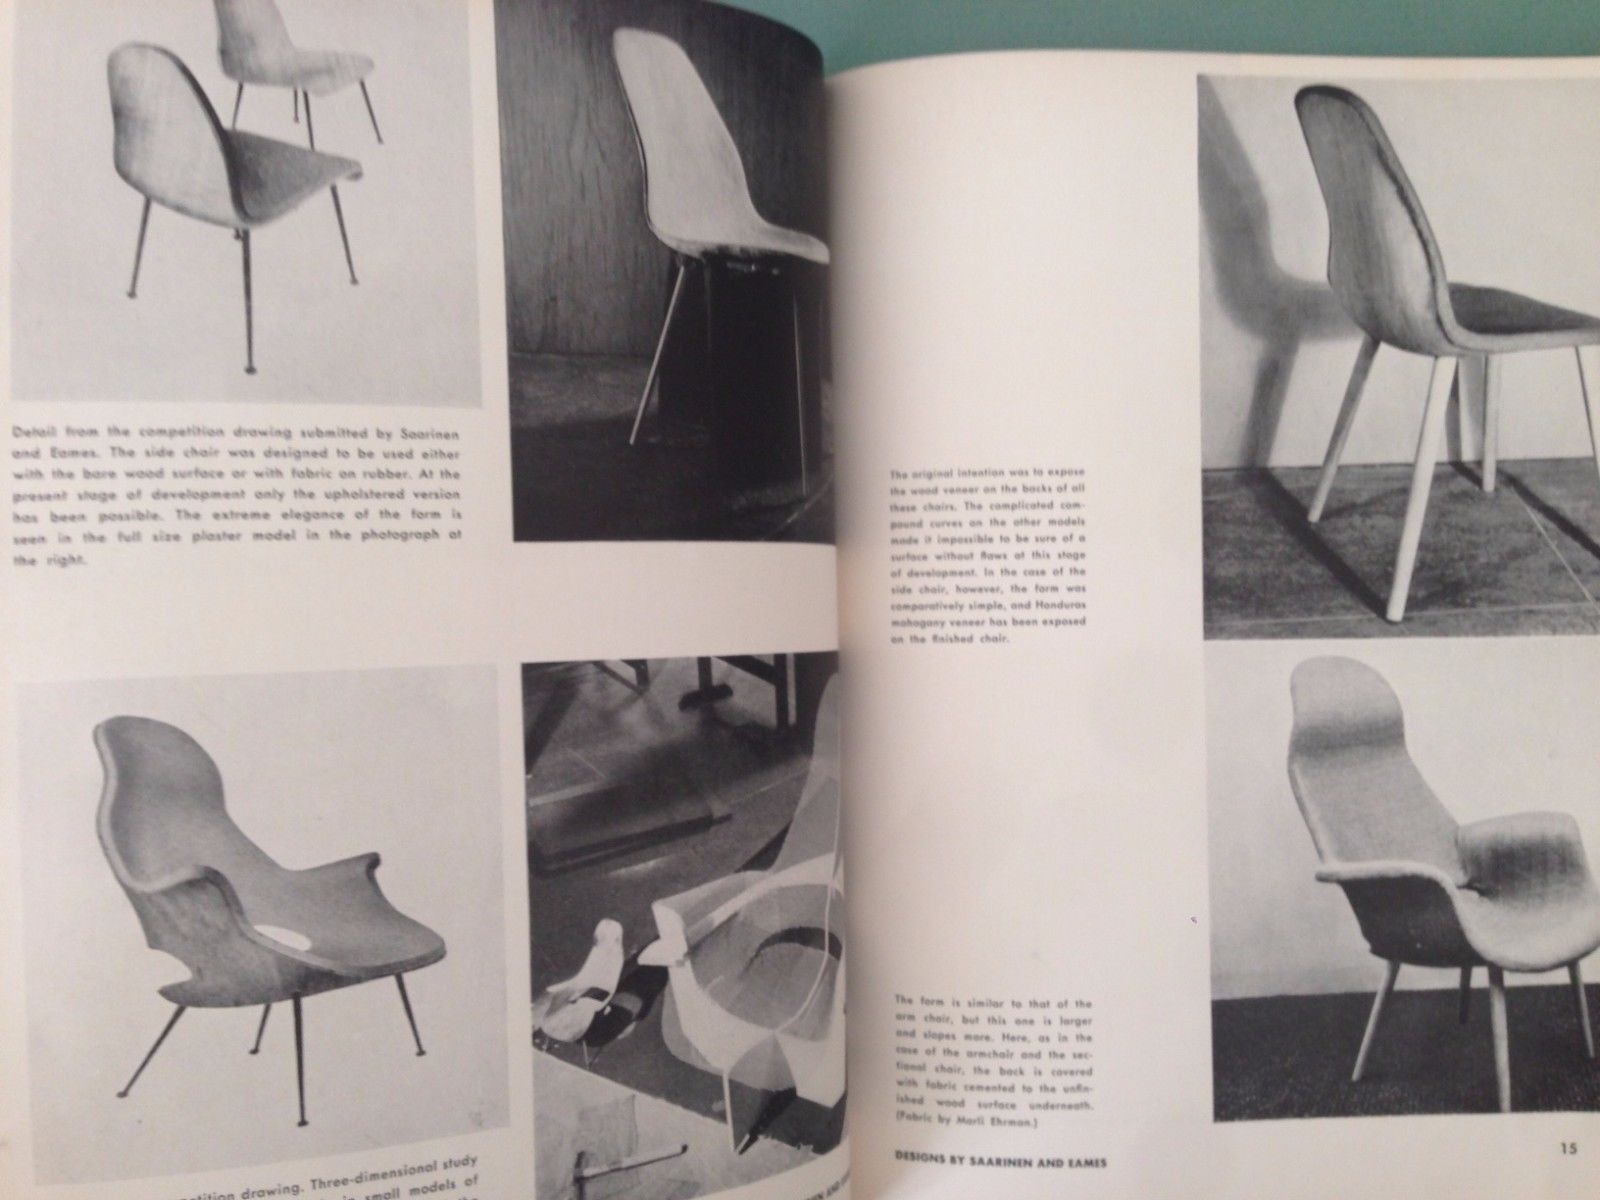 Eames And Saarinen Organic Design In Home Furnishings Eliot Noyes 1941 Charles Eames Catalog Moma Organic Design Charles Eames Home Furnishings